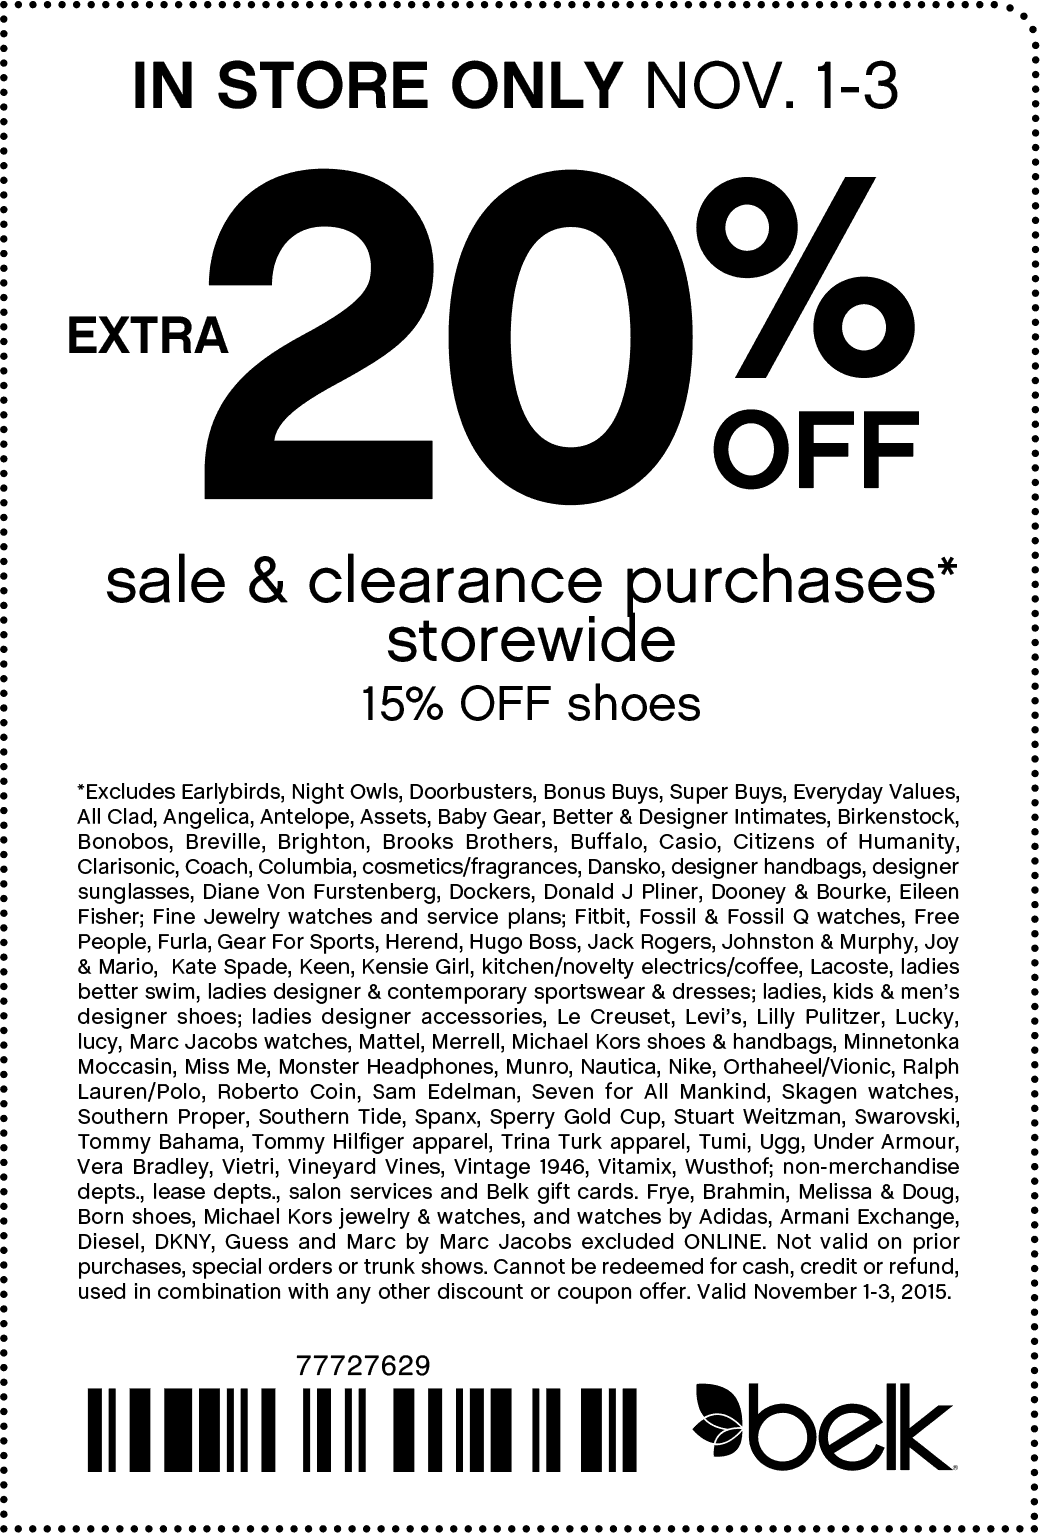 Belk Coupon November 2017 Extra 20% off sale & clearance at Belk